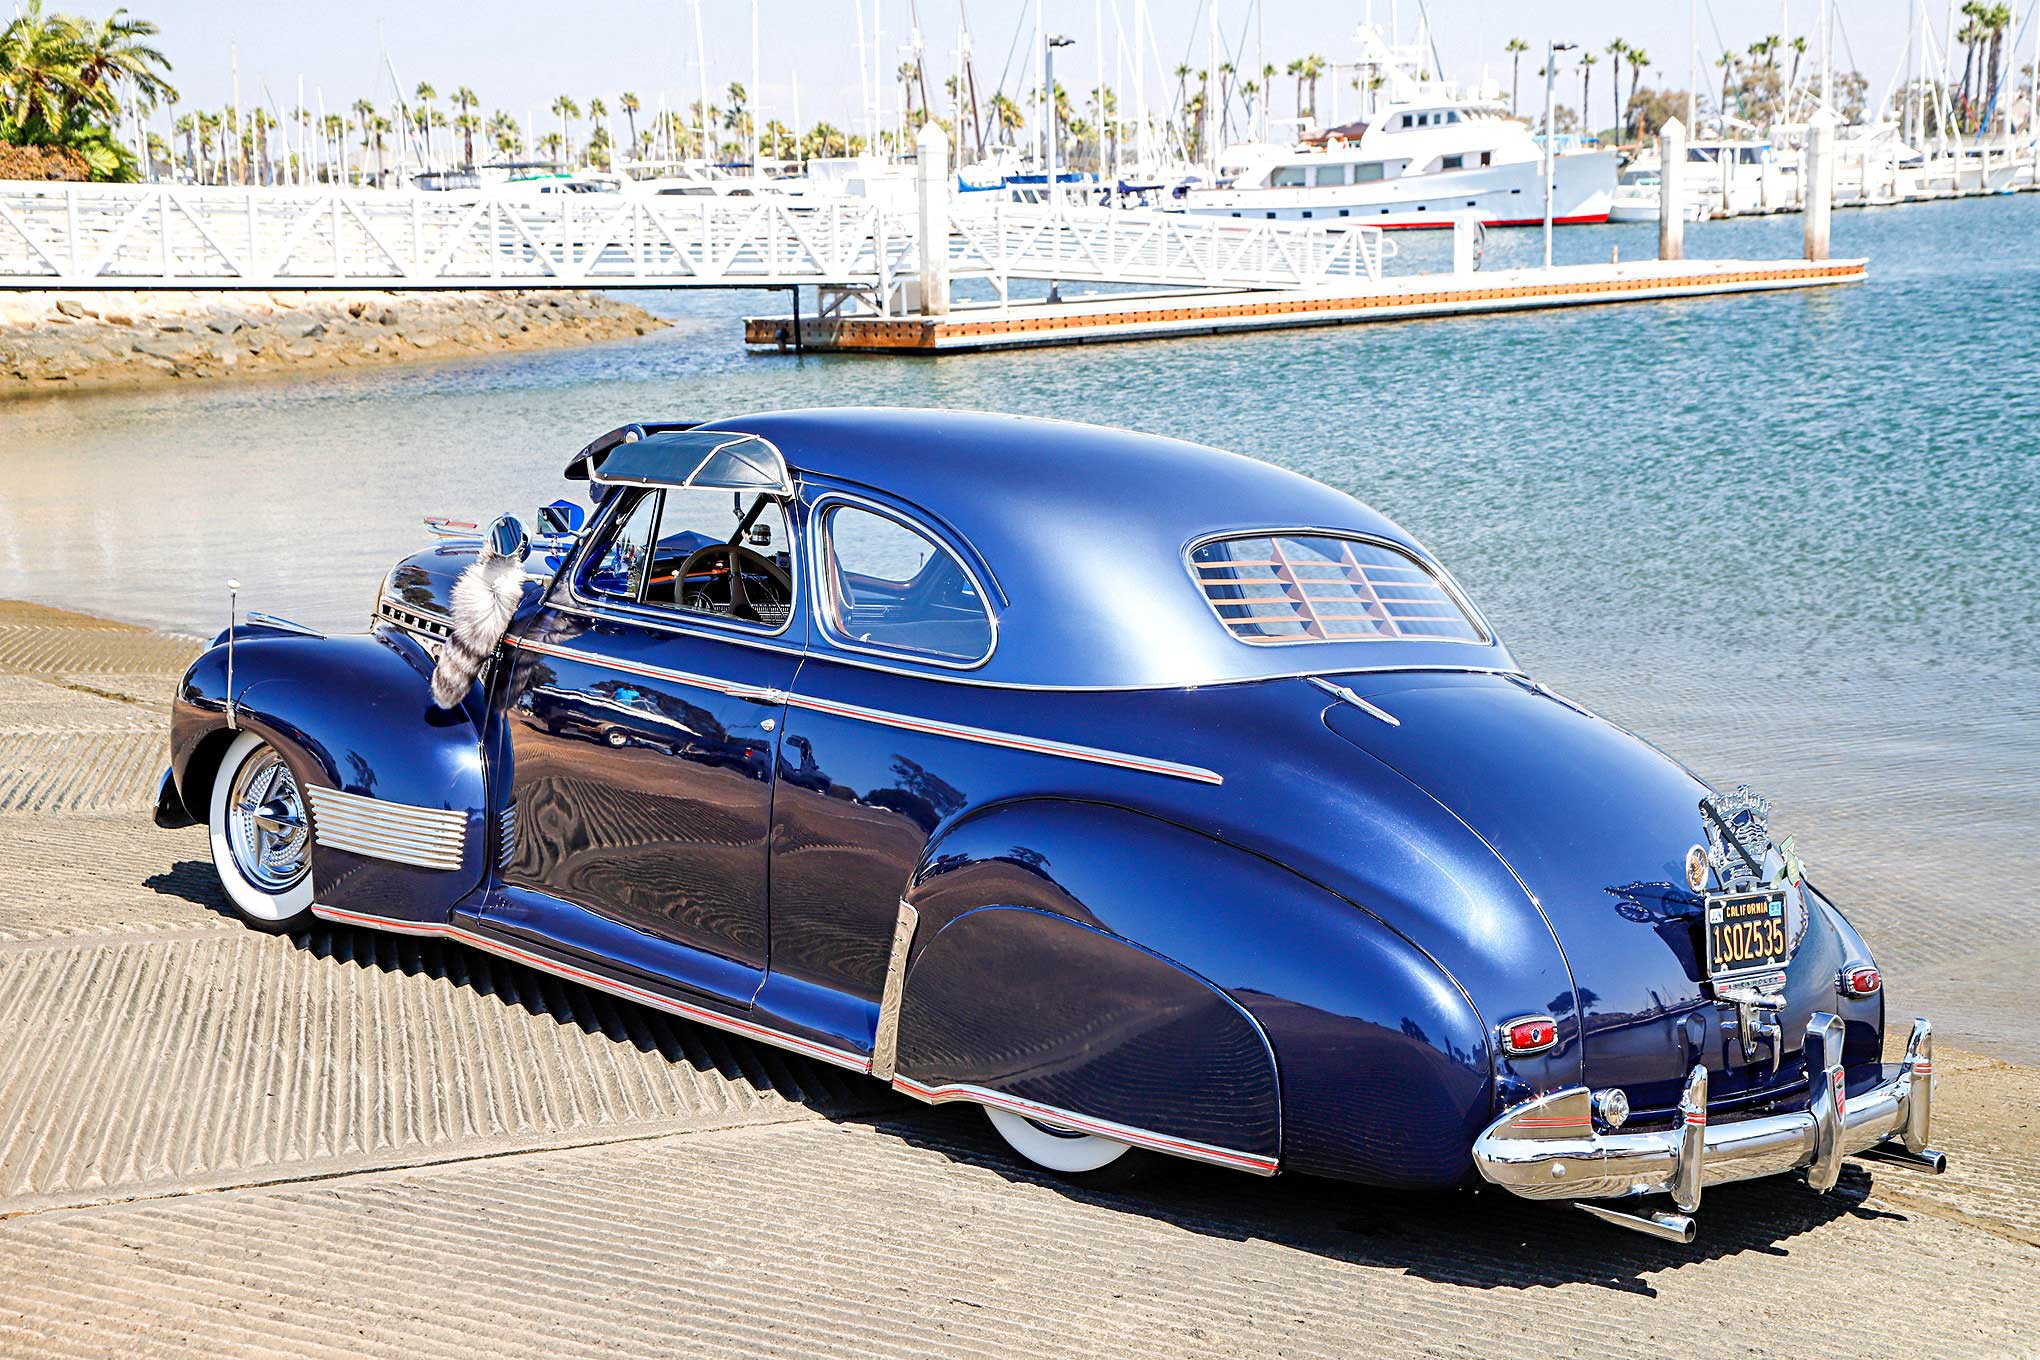 1941 Chevrolet Special DeLuxe Coupe - To Honor Thy Mother